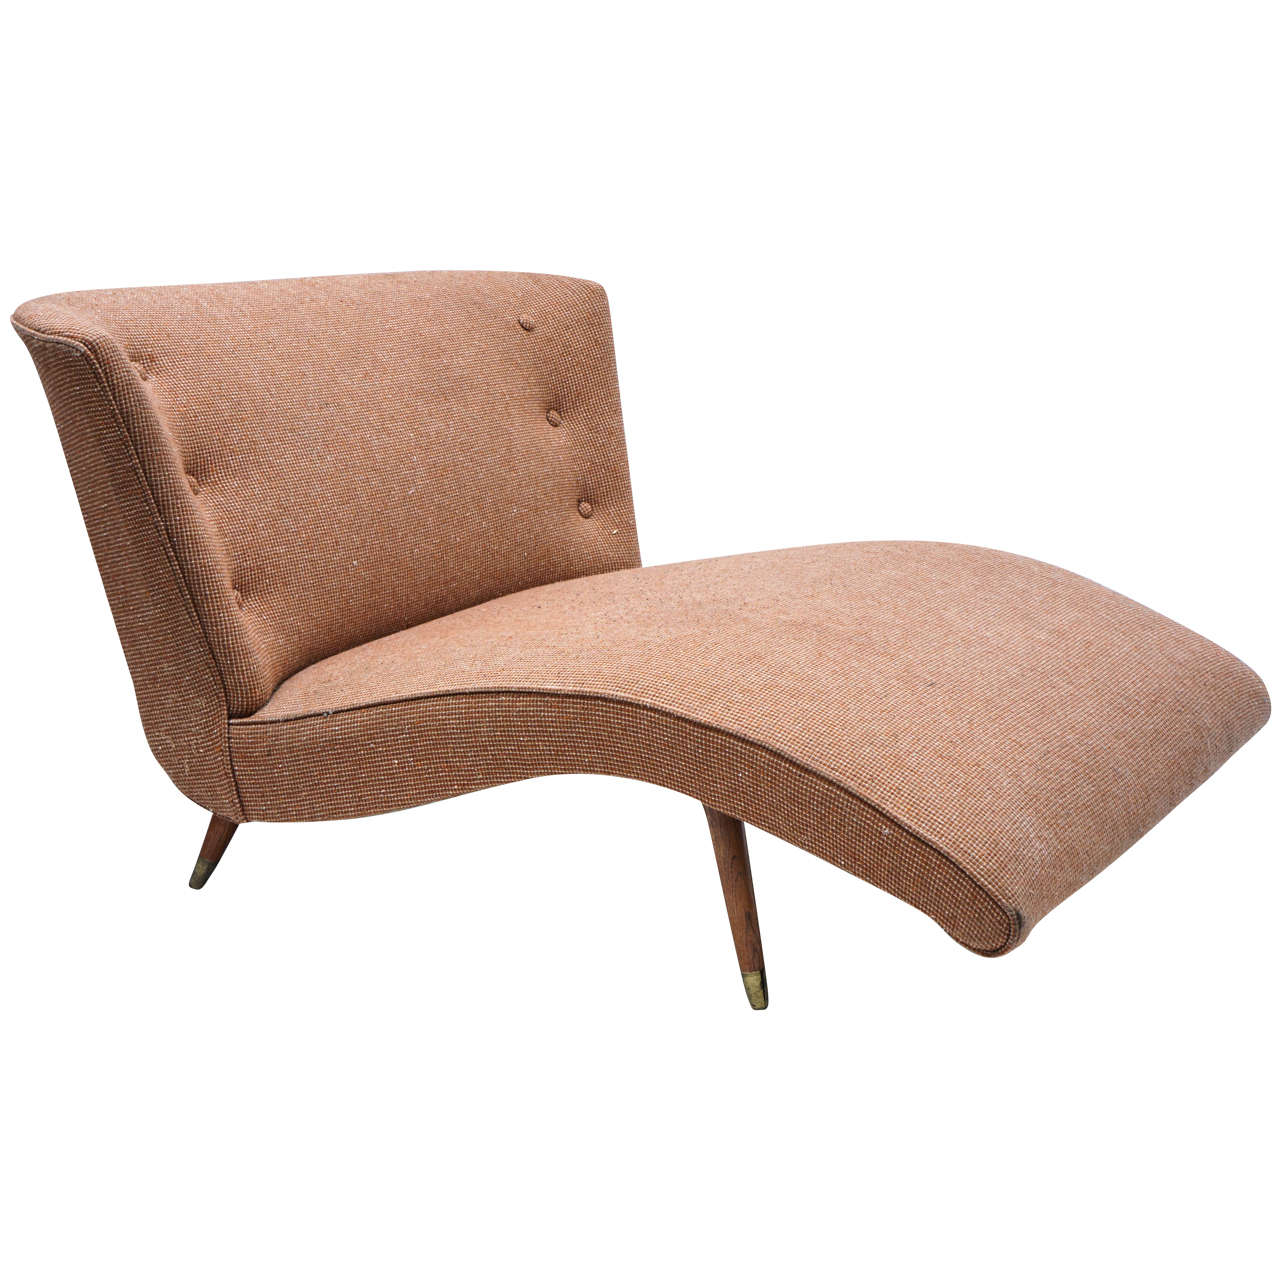 1950s curvy chaise lounge after mccobb or probber at 1stdibs for 1950 chaise lounge